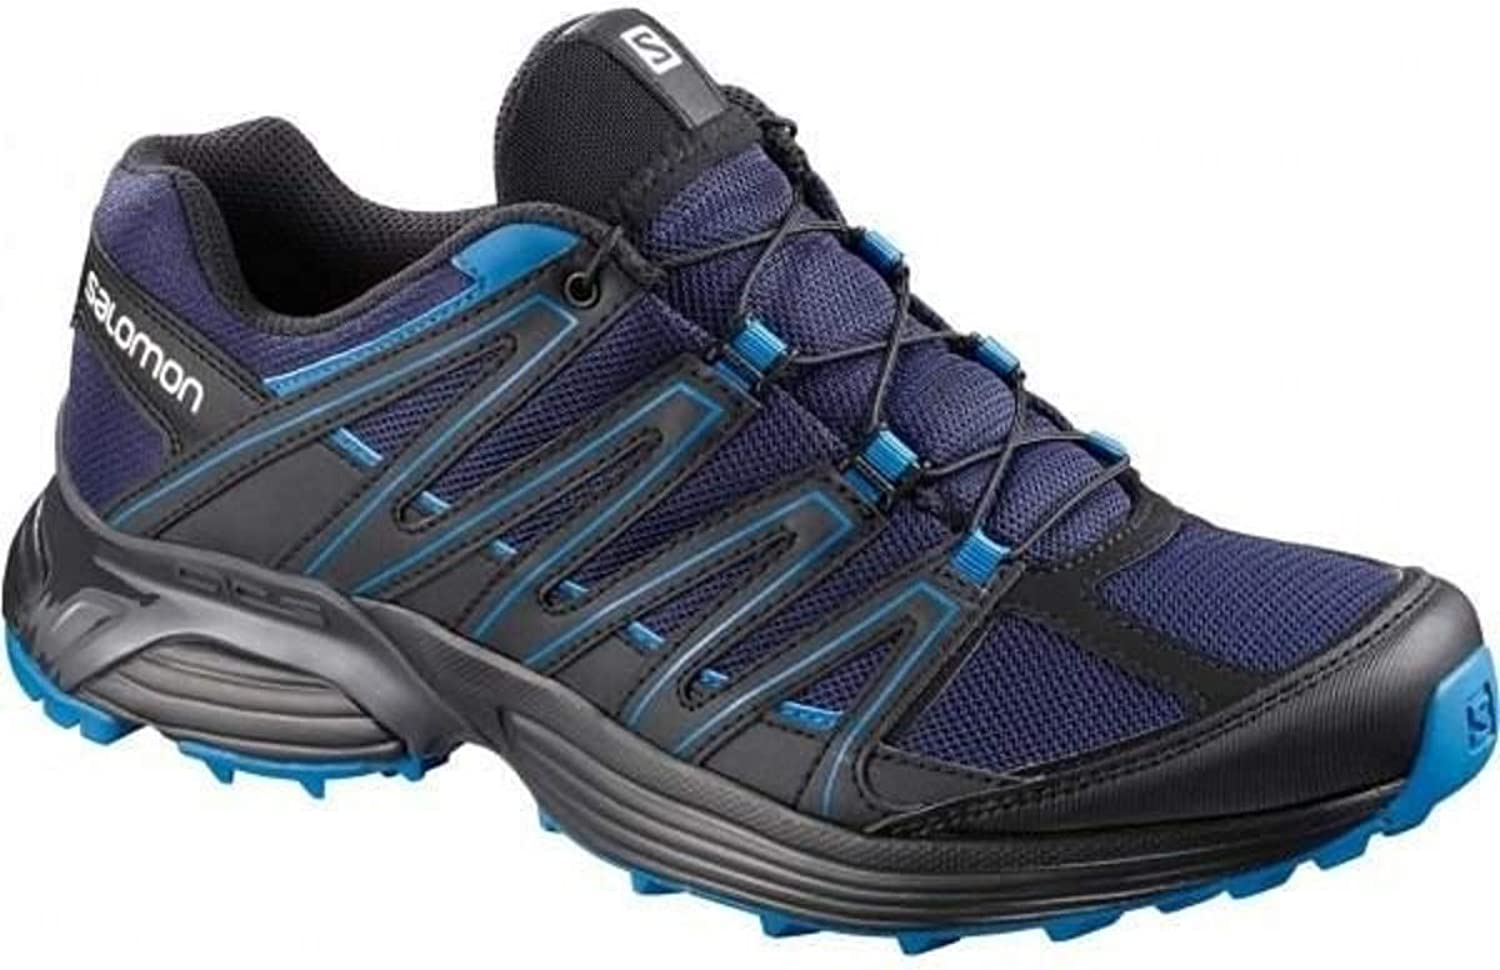 Salomon XT Maido - Chaussures Homme - Bleu Pointures UK 9 EU 43 1 3 2018